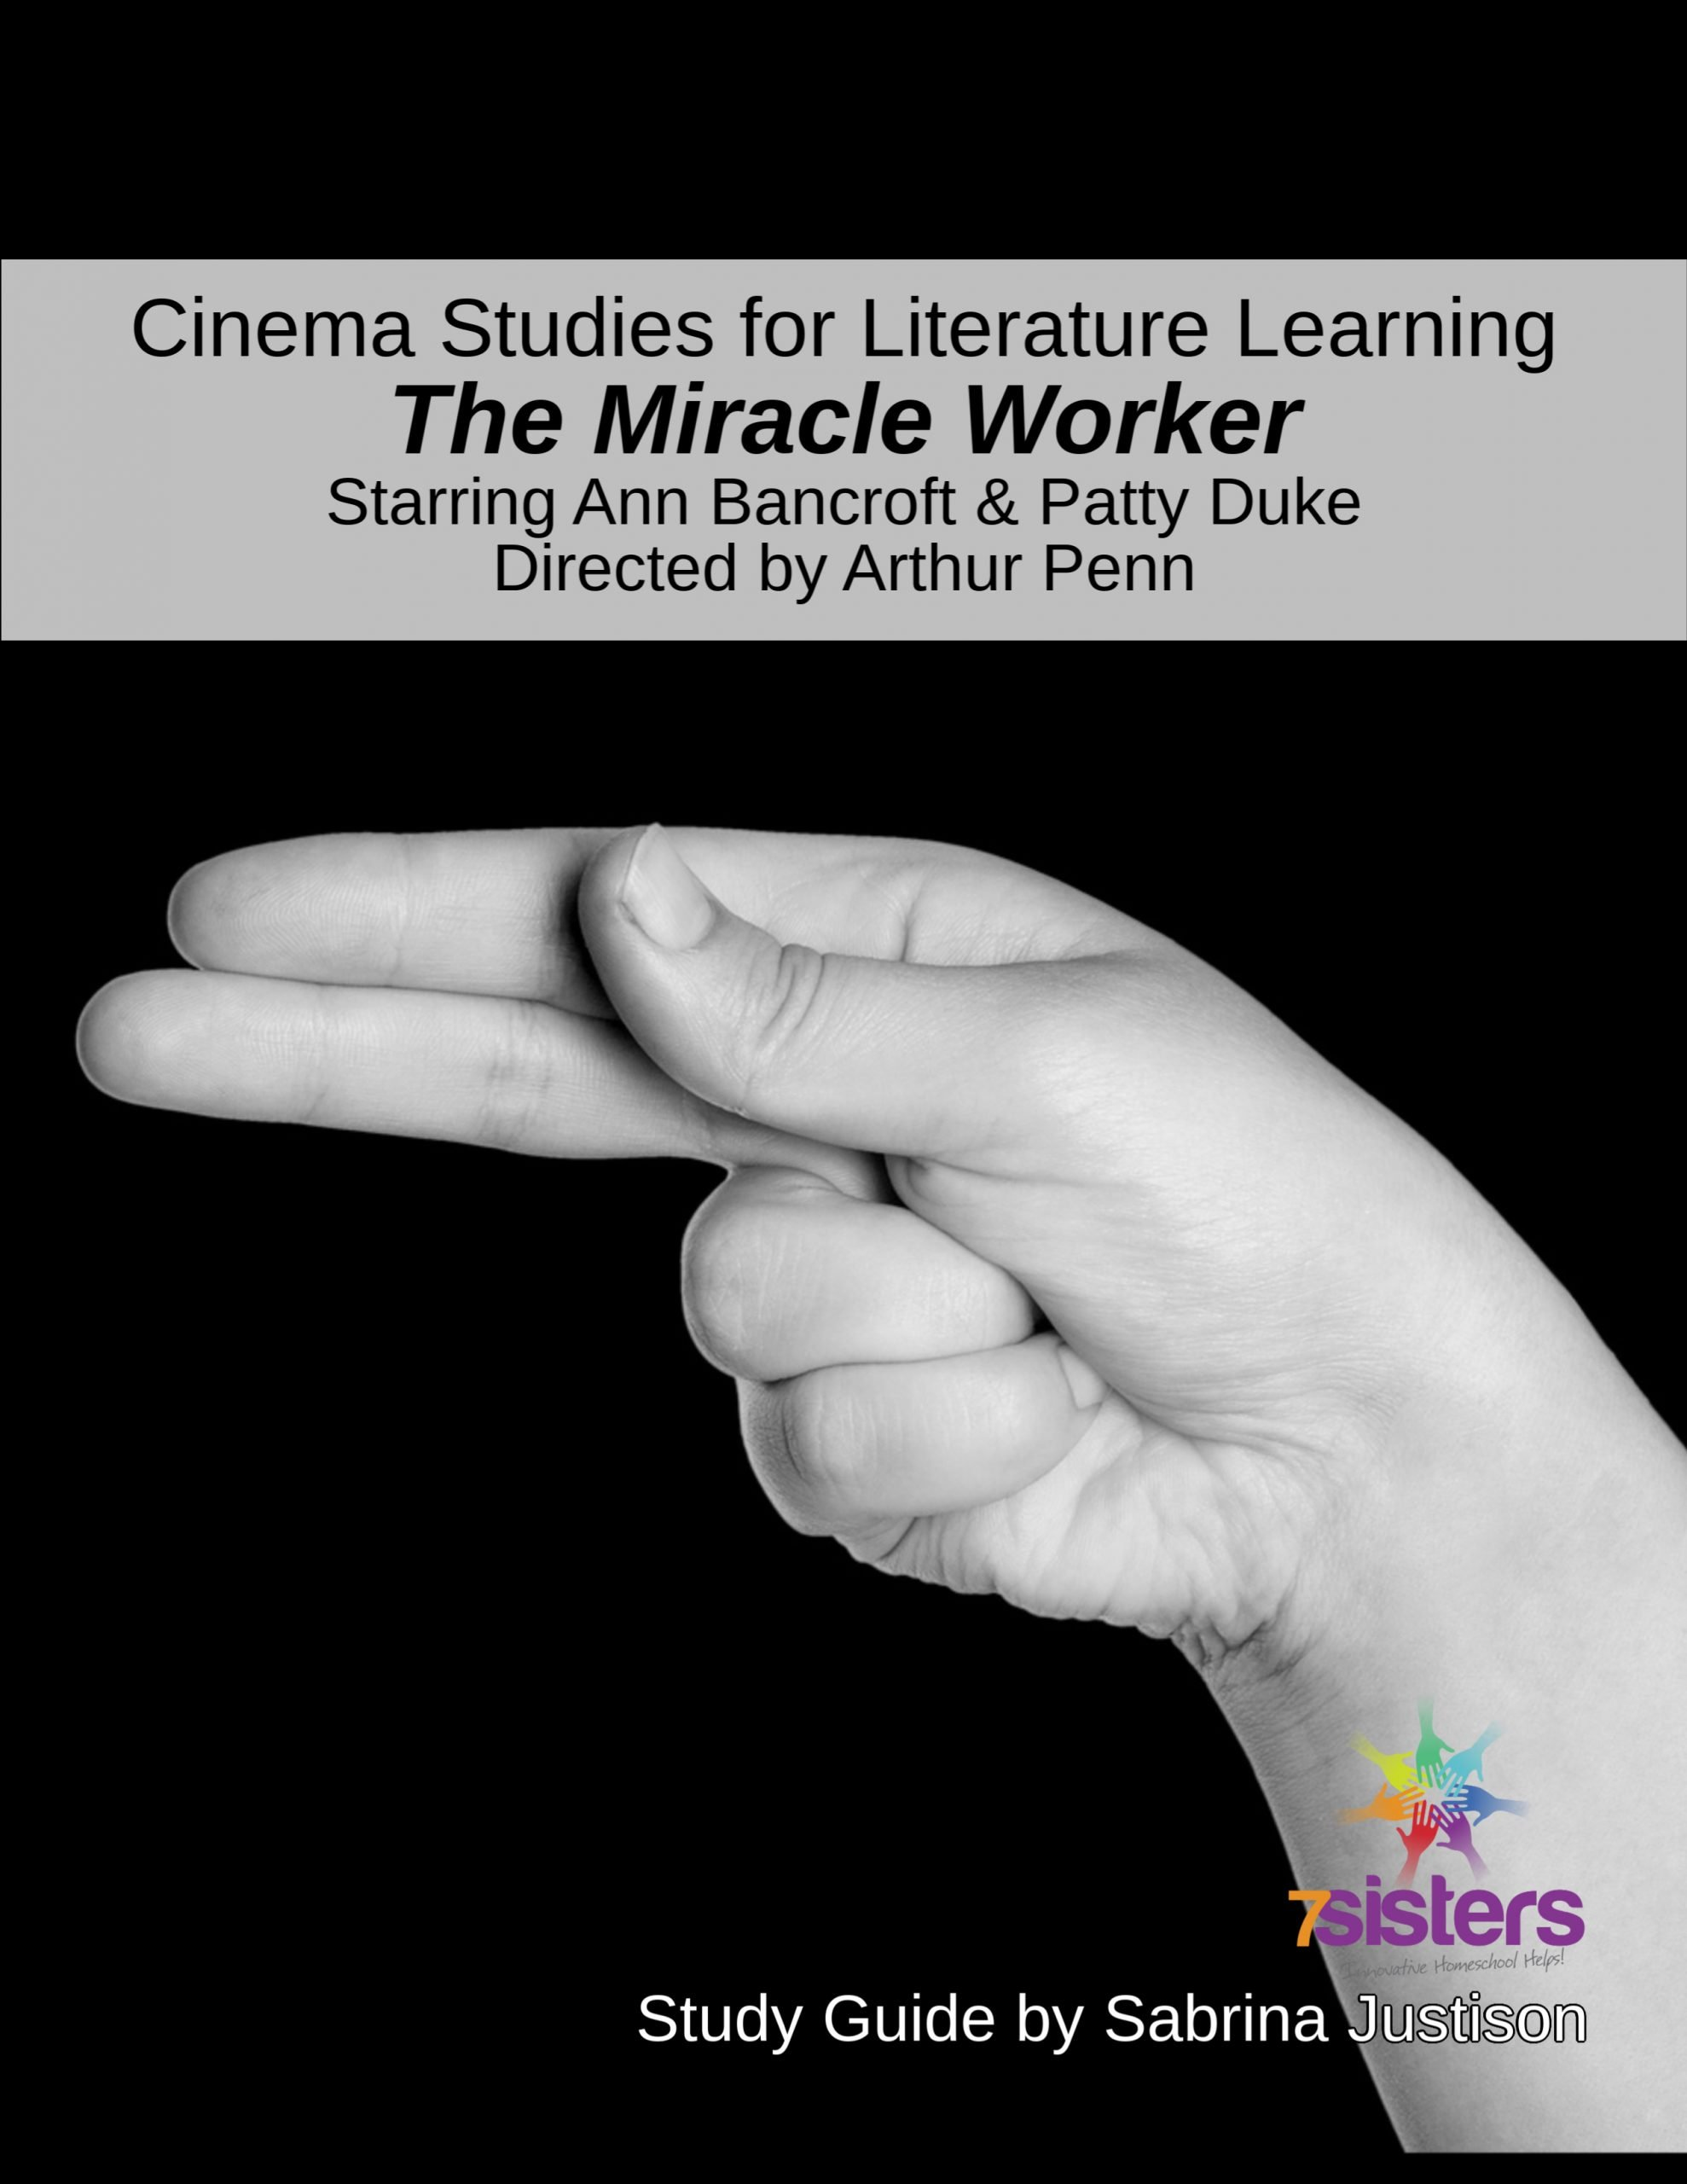 Cinema Study Guide for The Miracle Worker